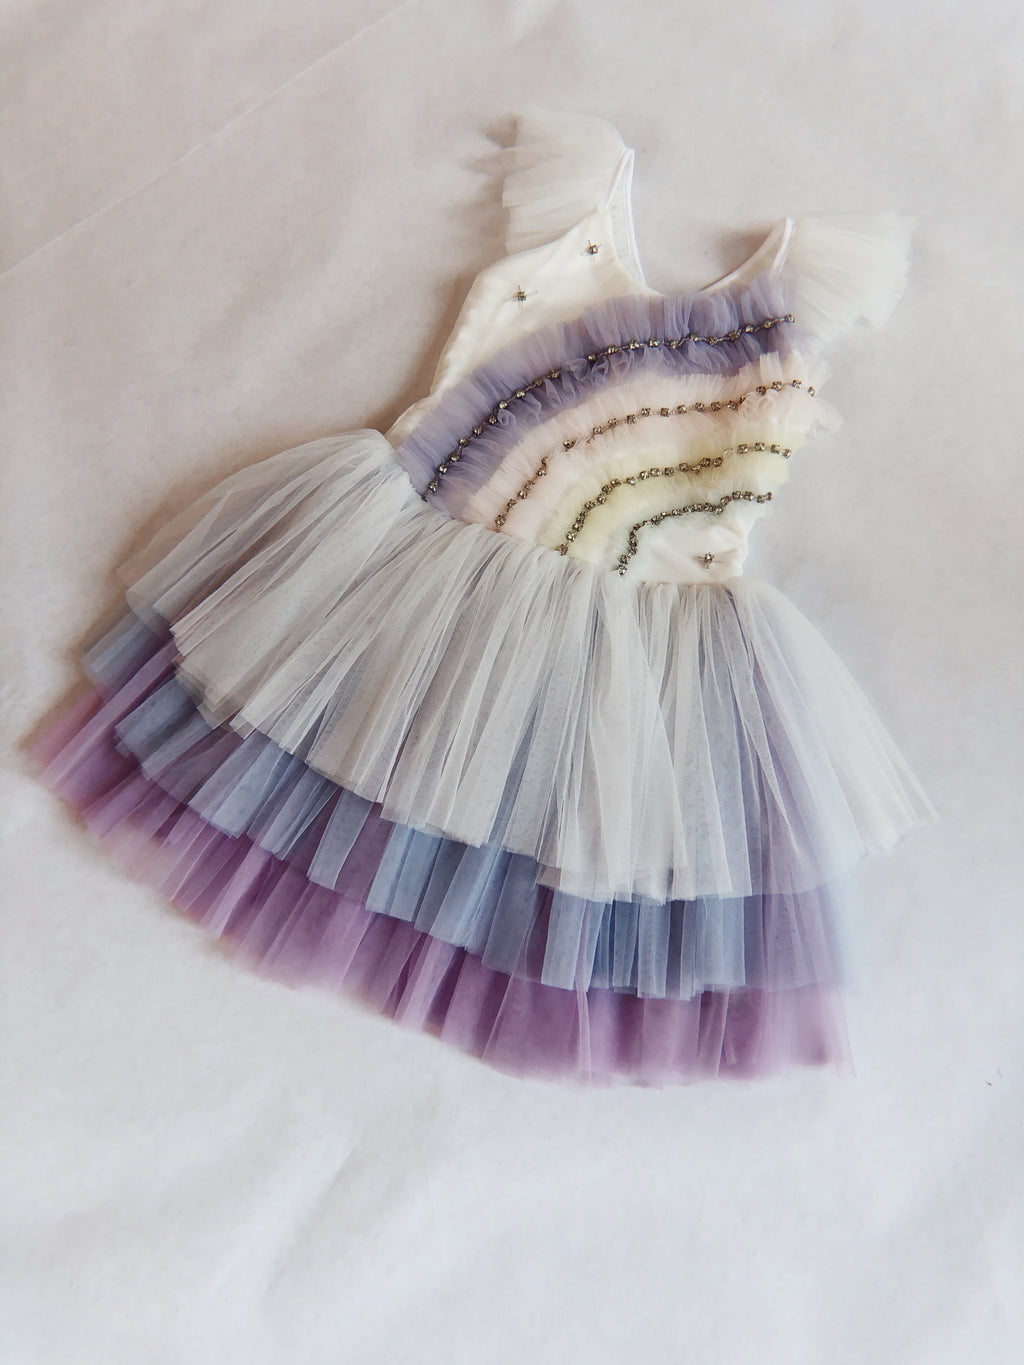 IRIDESCENT RAINBOW TUTU DRESS (PREORDER)